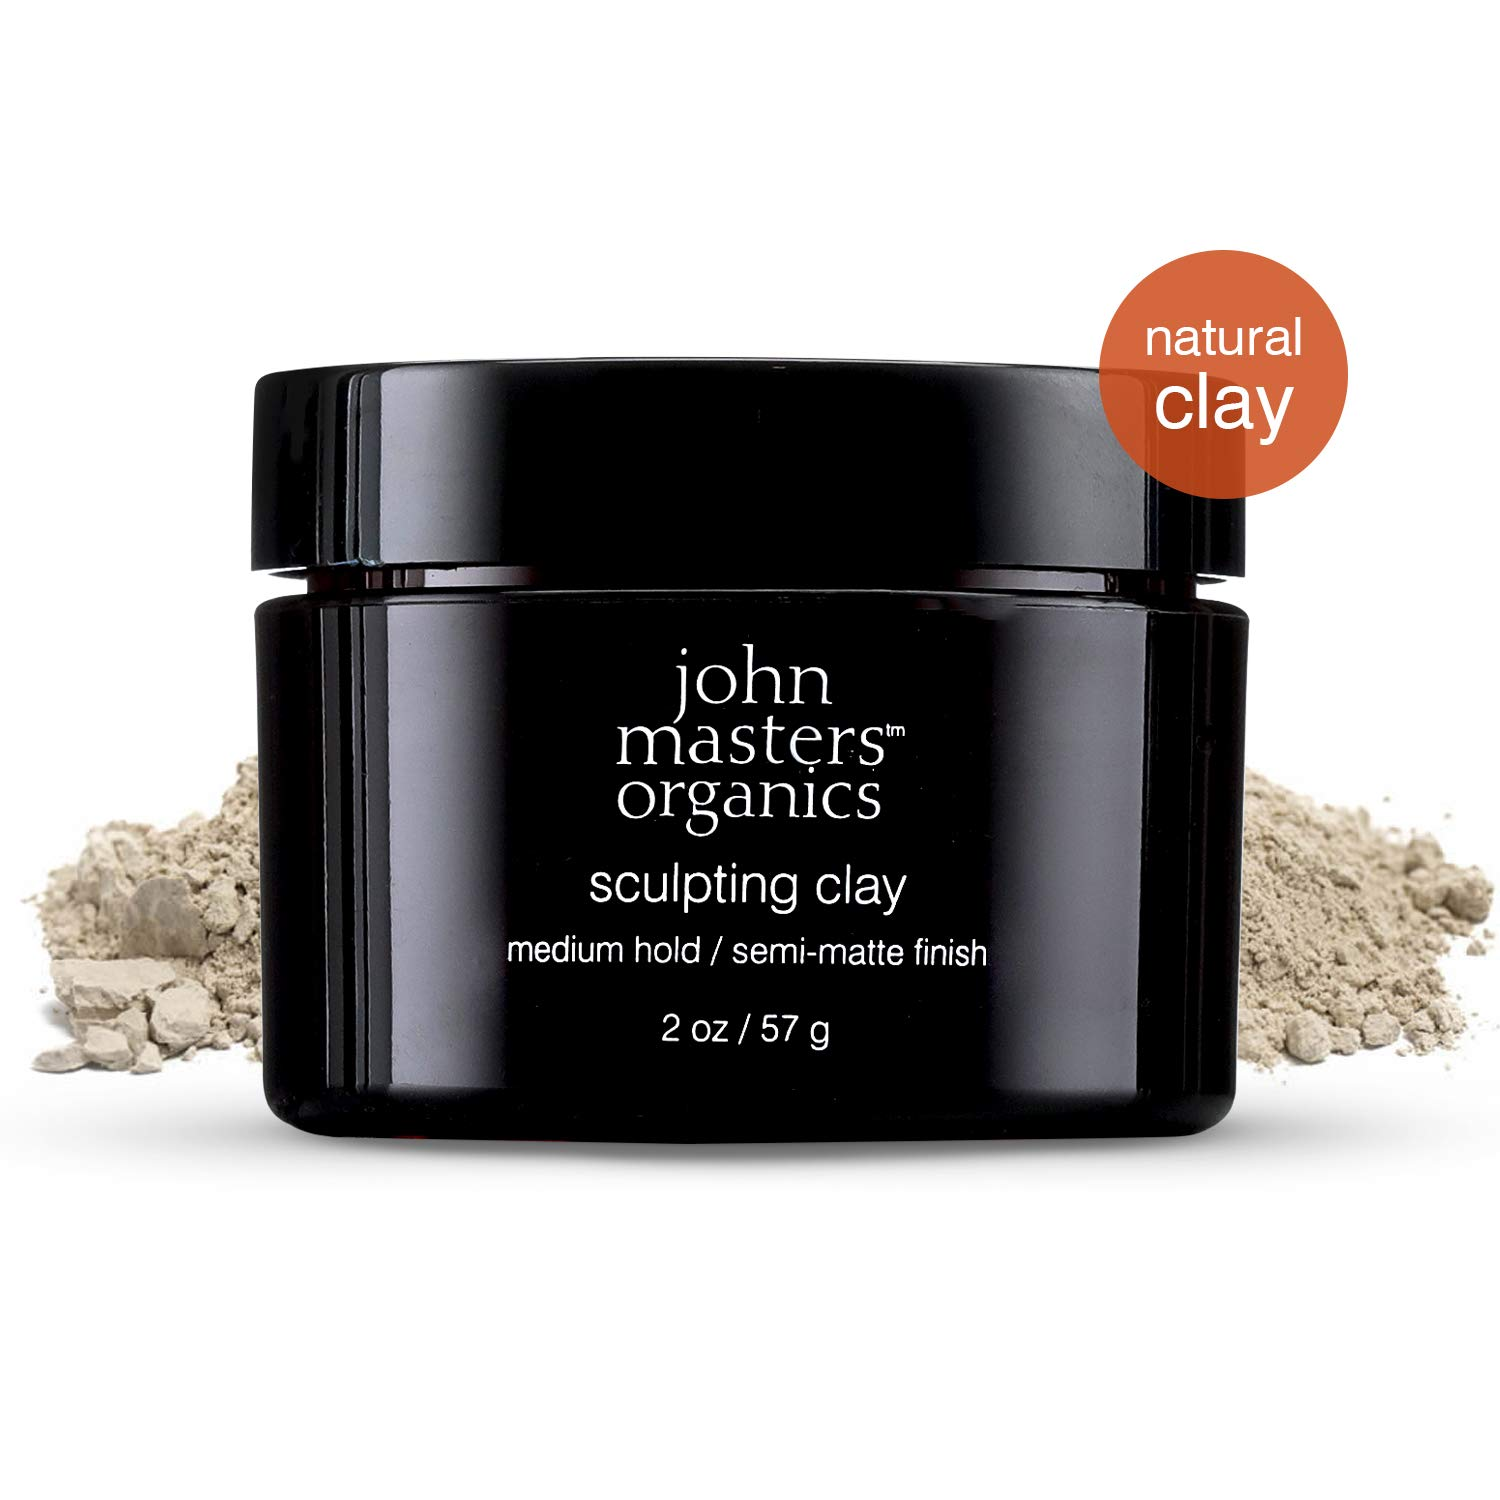 John Masters Organic - Sculpting Clay - Adds Volume and Shine, Gives Medium Hold & Easy styling - Silicone-free - 2.12 oz by John Masters